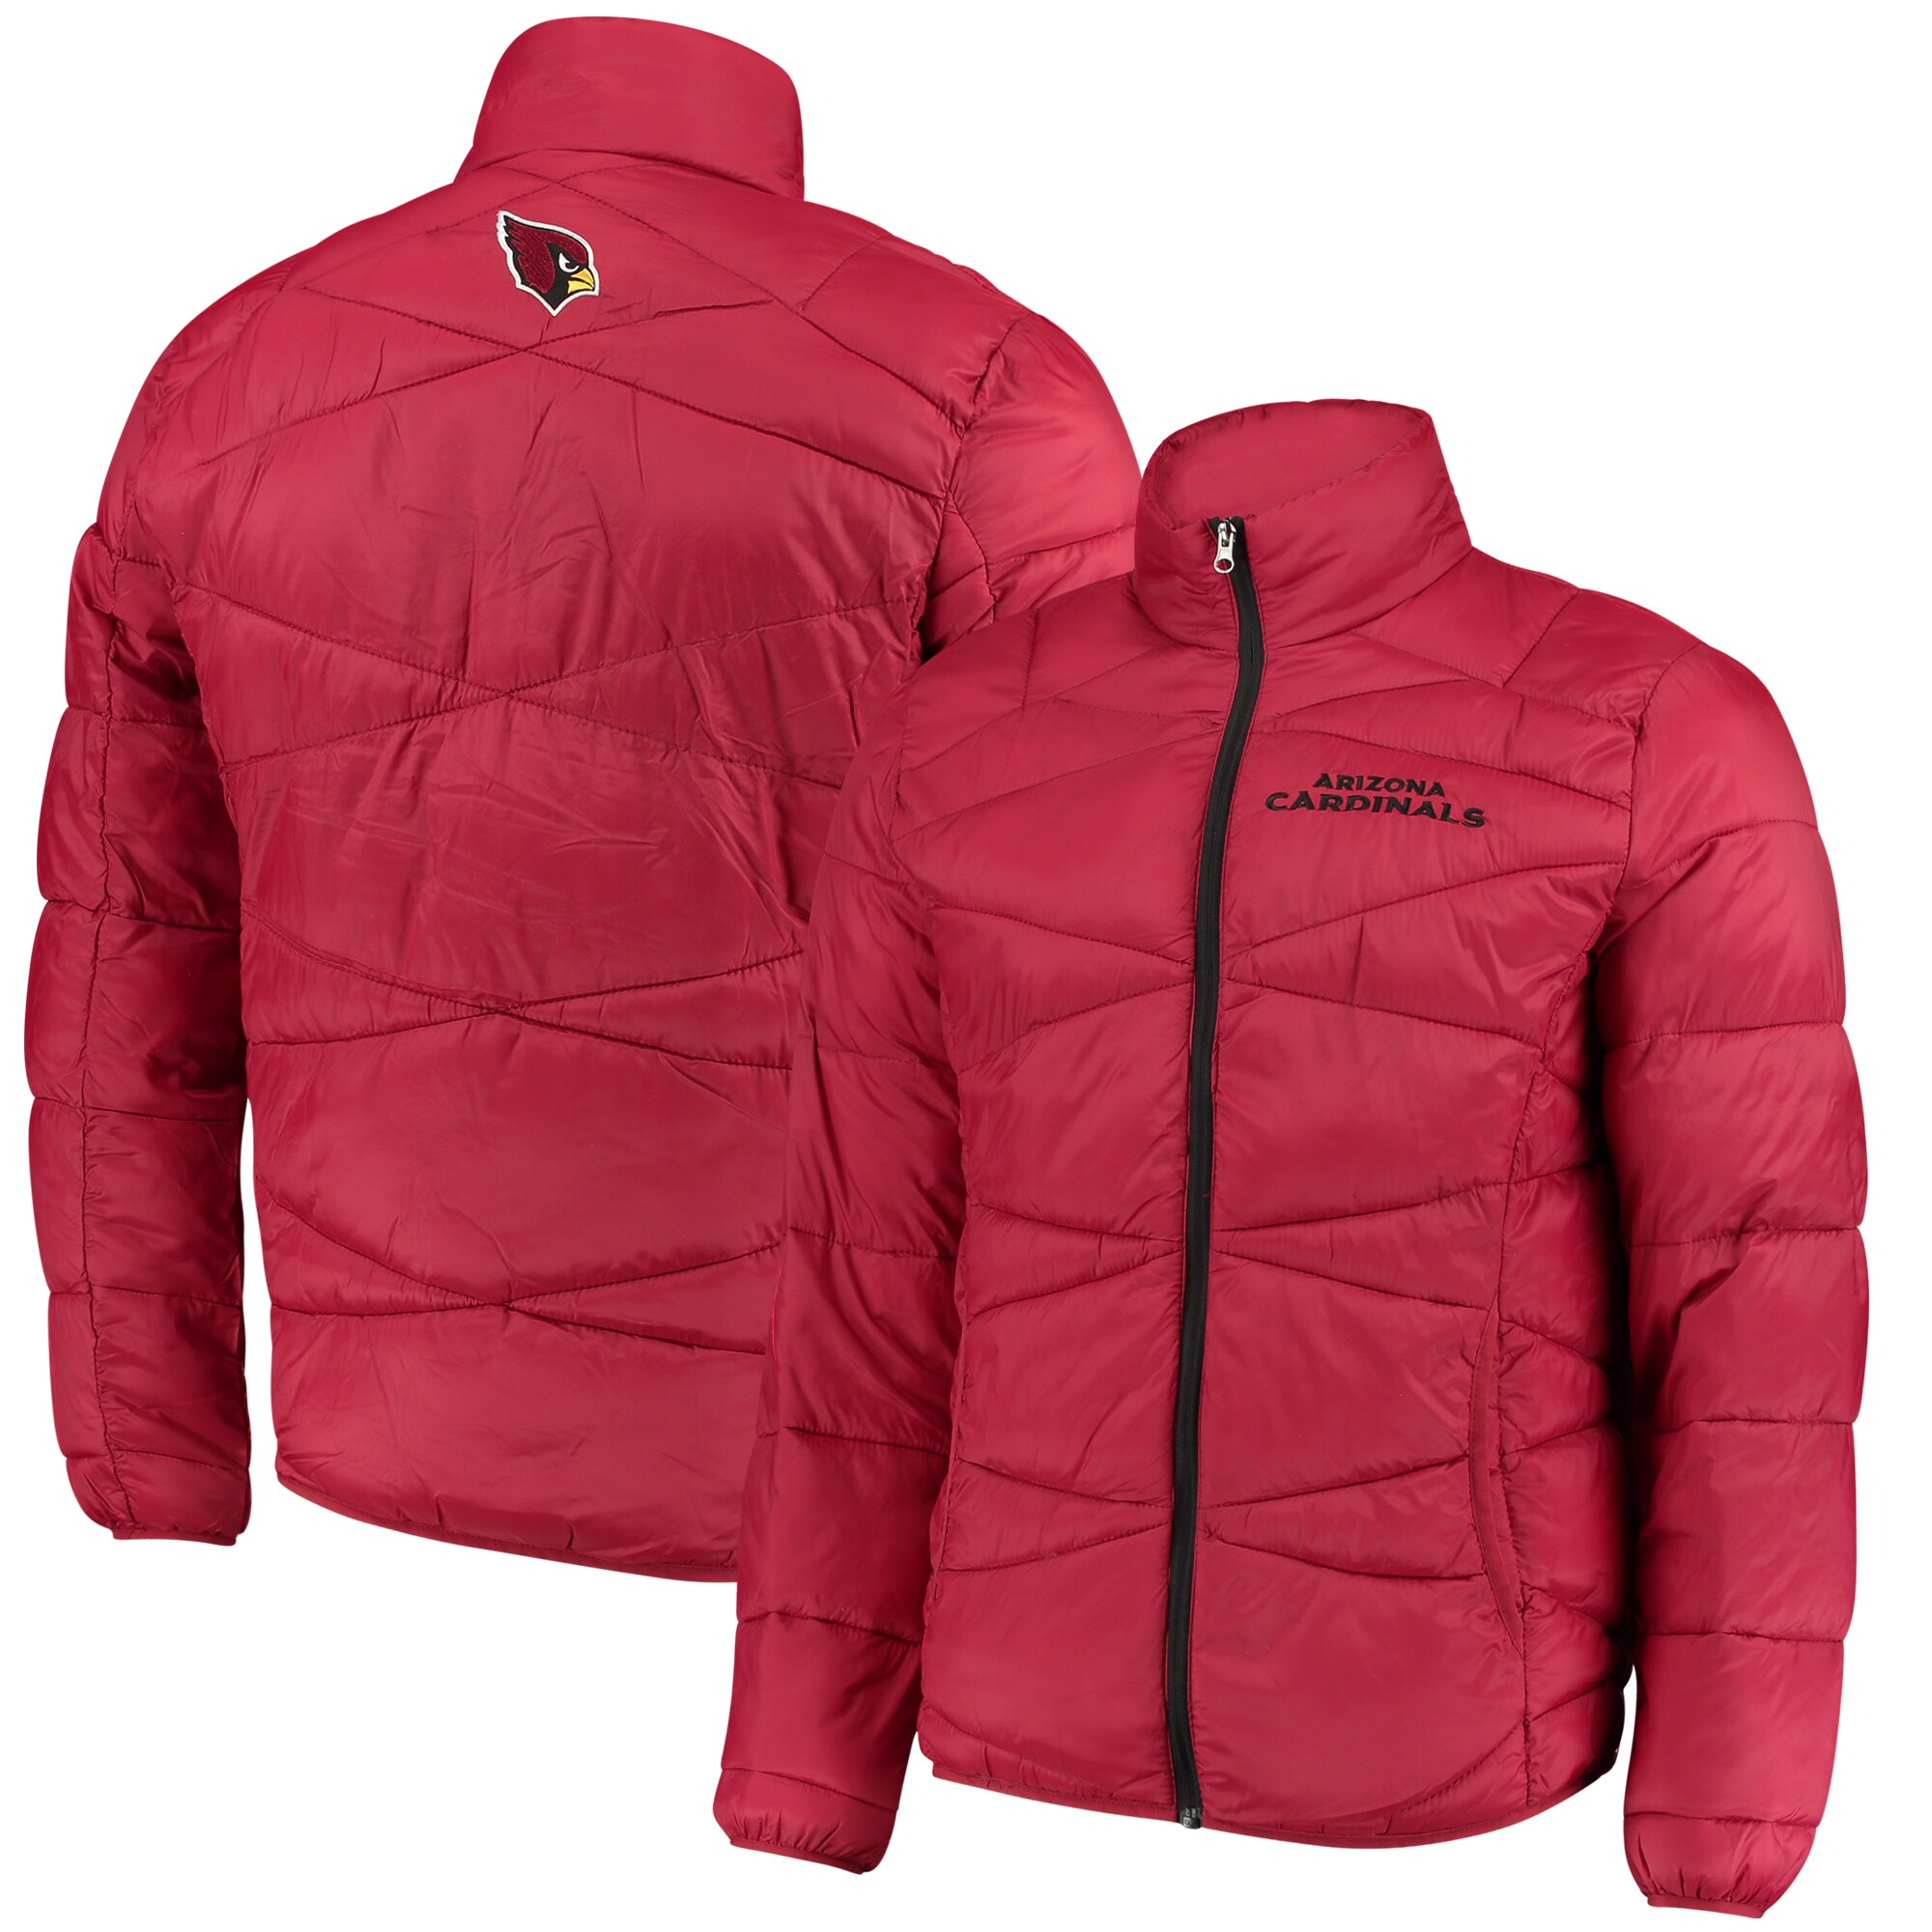 Arizona Cardinals G-III Sports by Carl Banks Blitz Packable Puffer Full-Zip Jacket - Cardinal